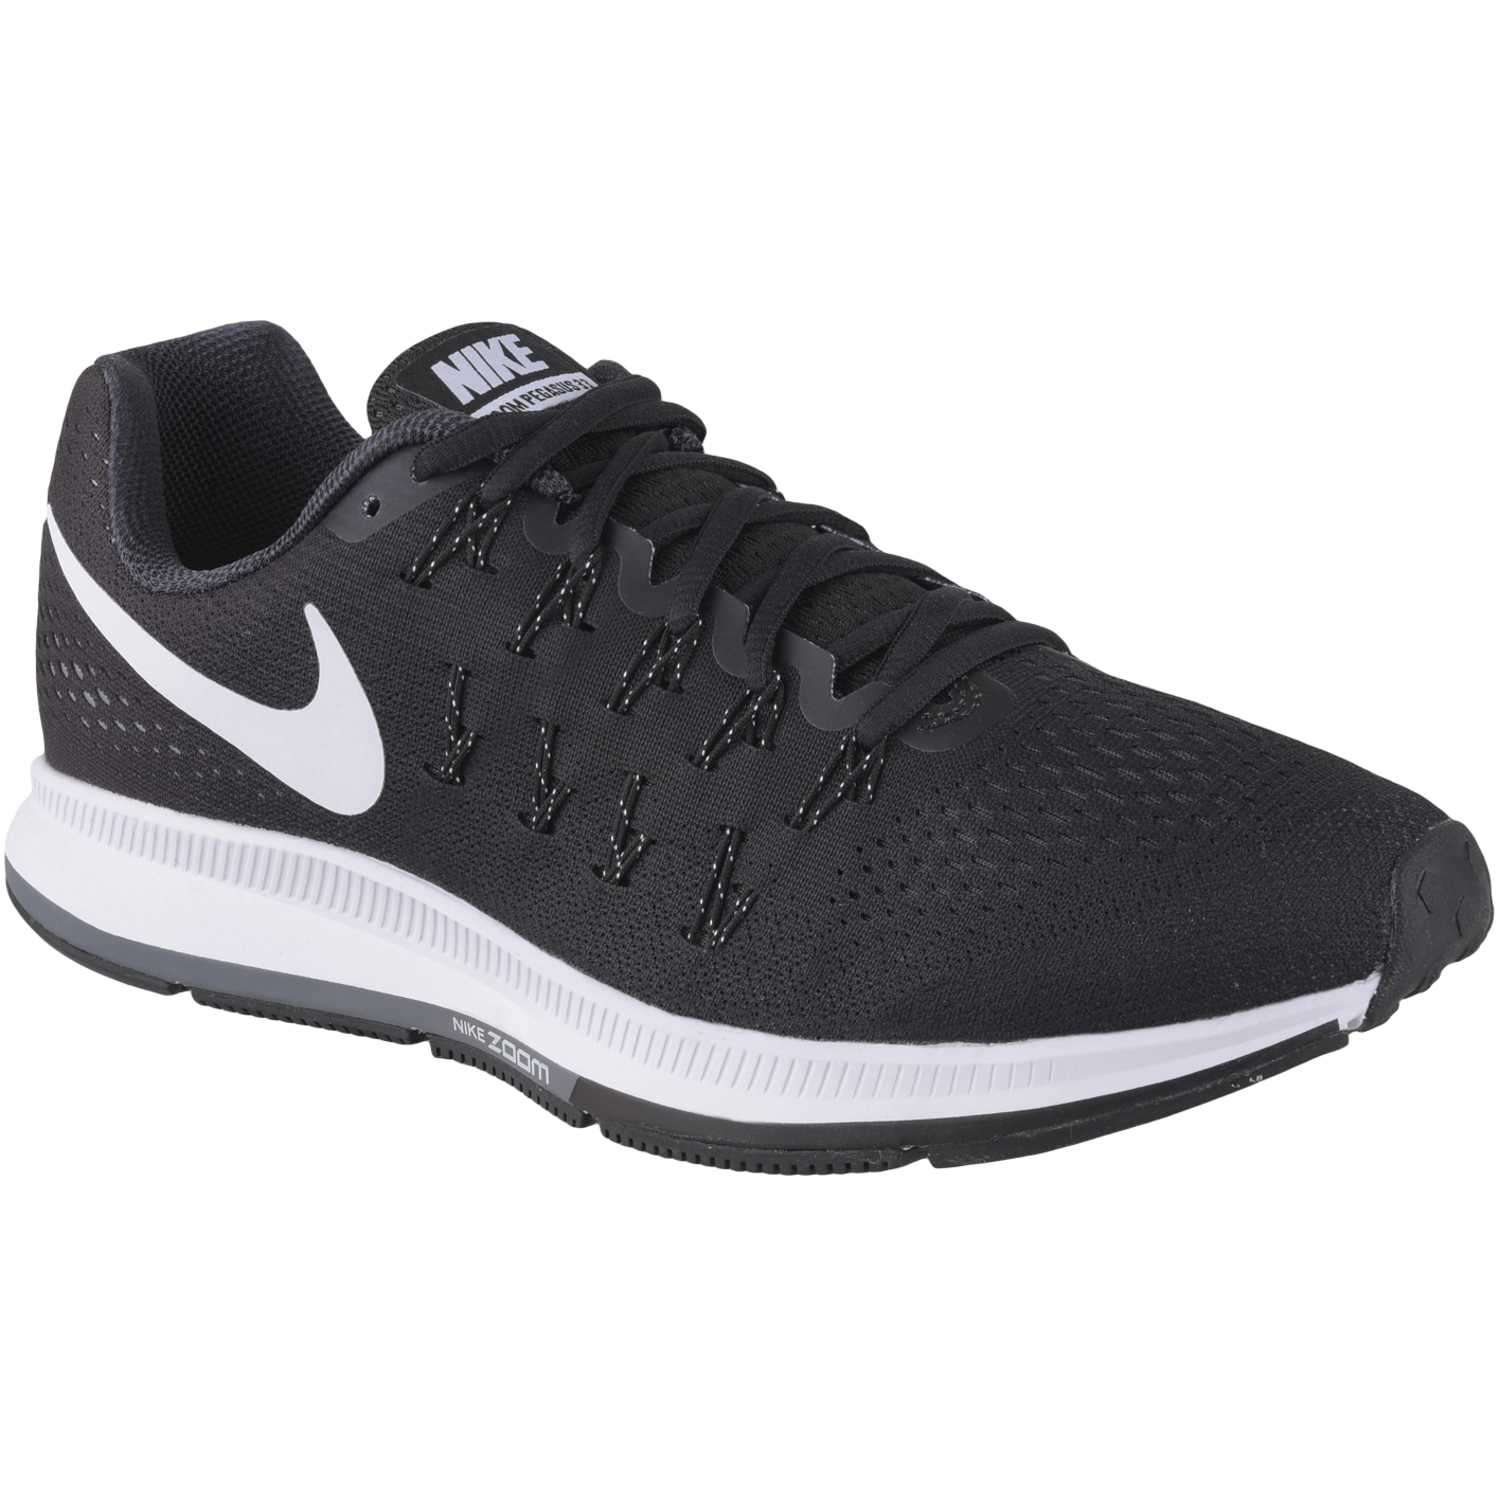 newest collection 951b2 5d40a Zapatilla de Hombre Nike Negro   Blanco air zoom pegasus 33